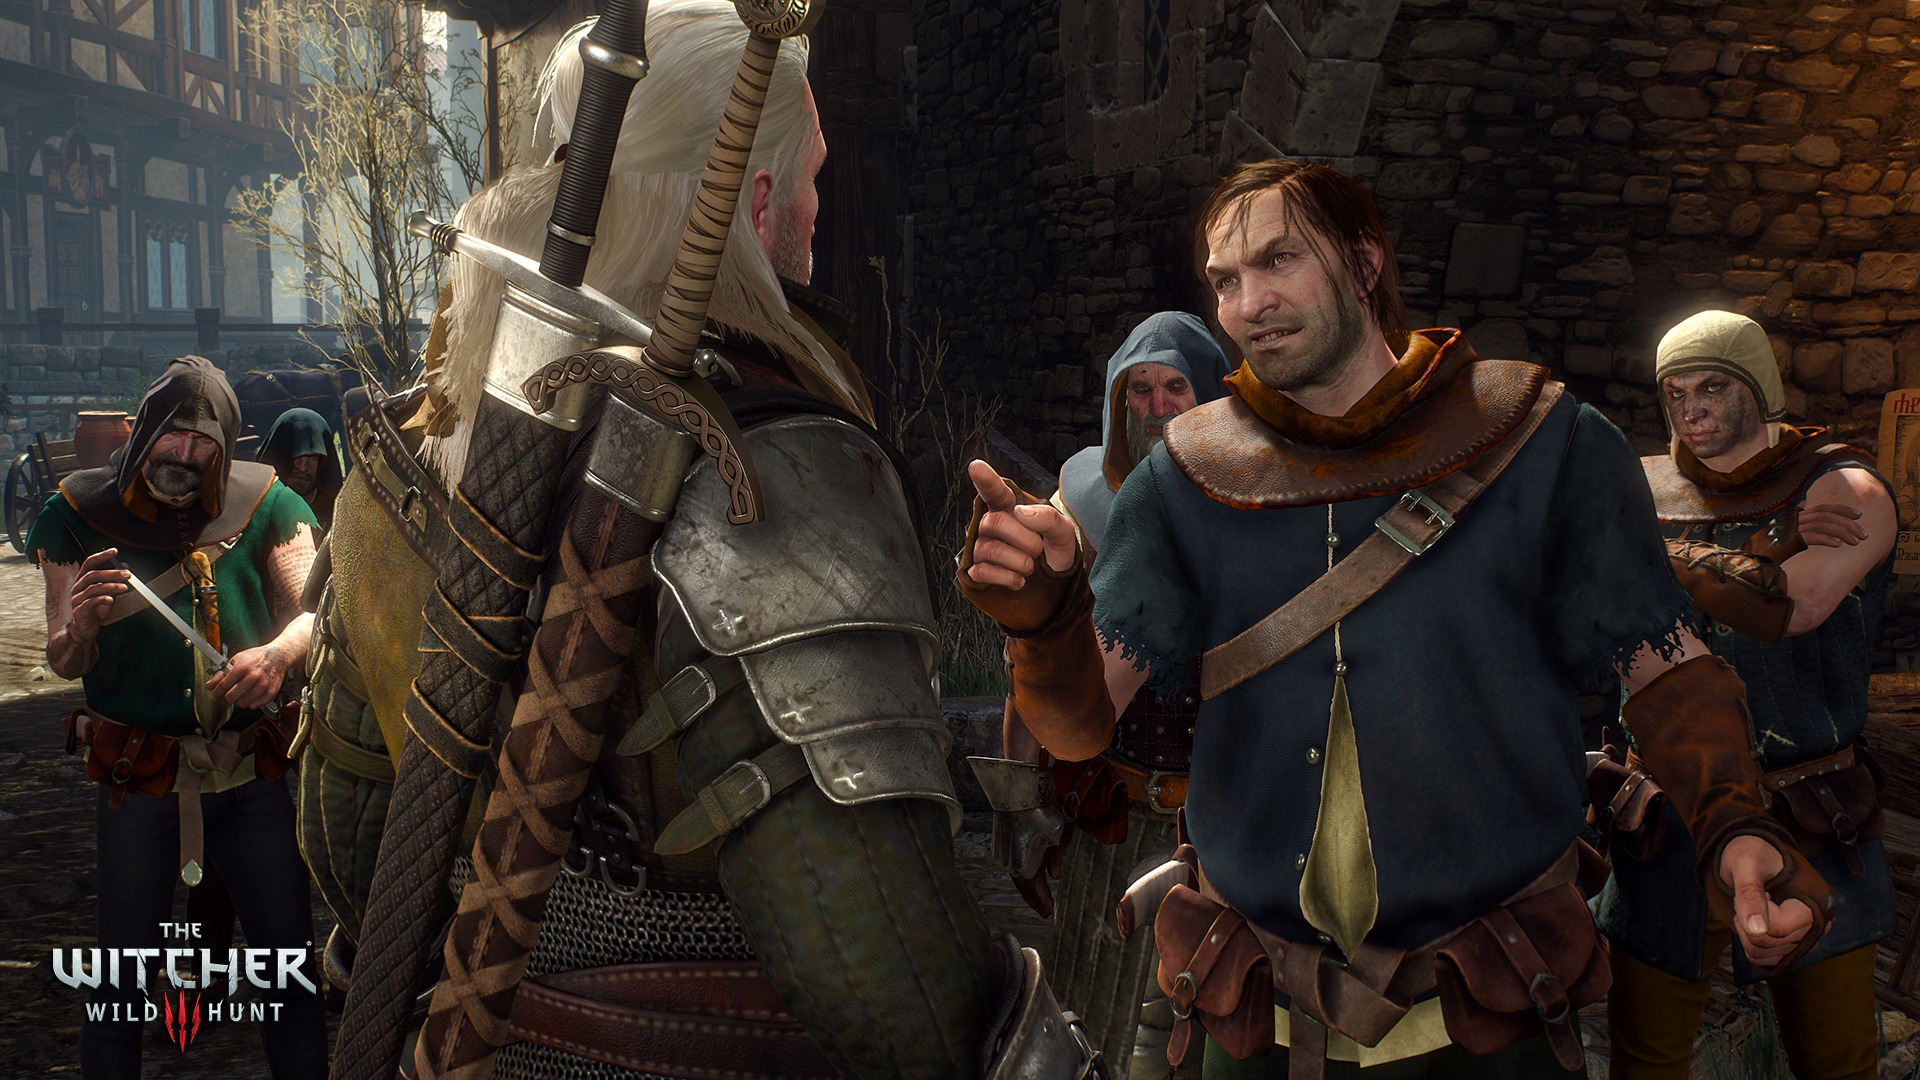 The_Witcher_3_Wild_Hunt_They_think_it'll_be_an_easy_fight